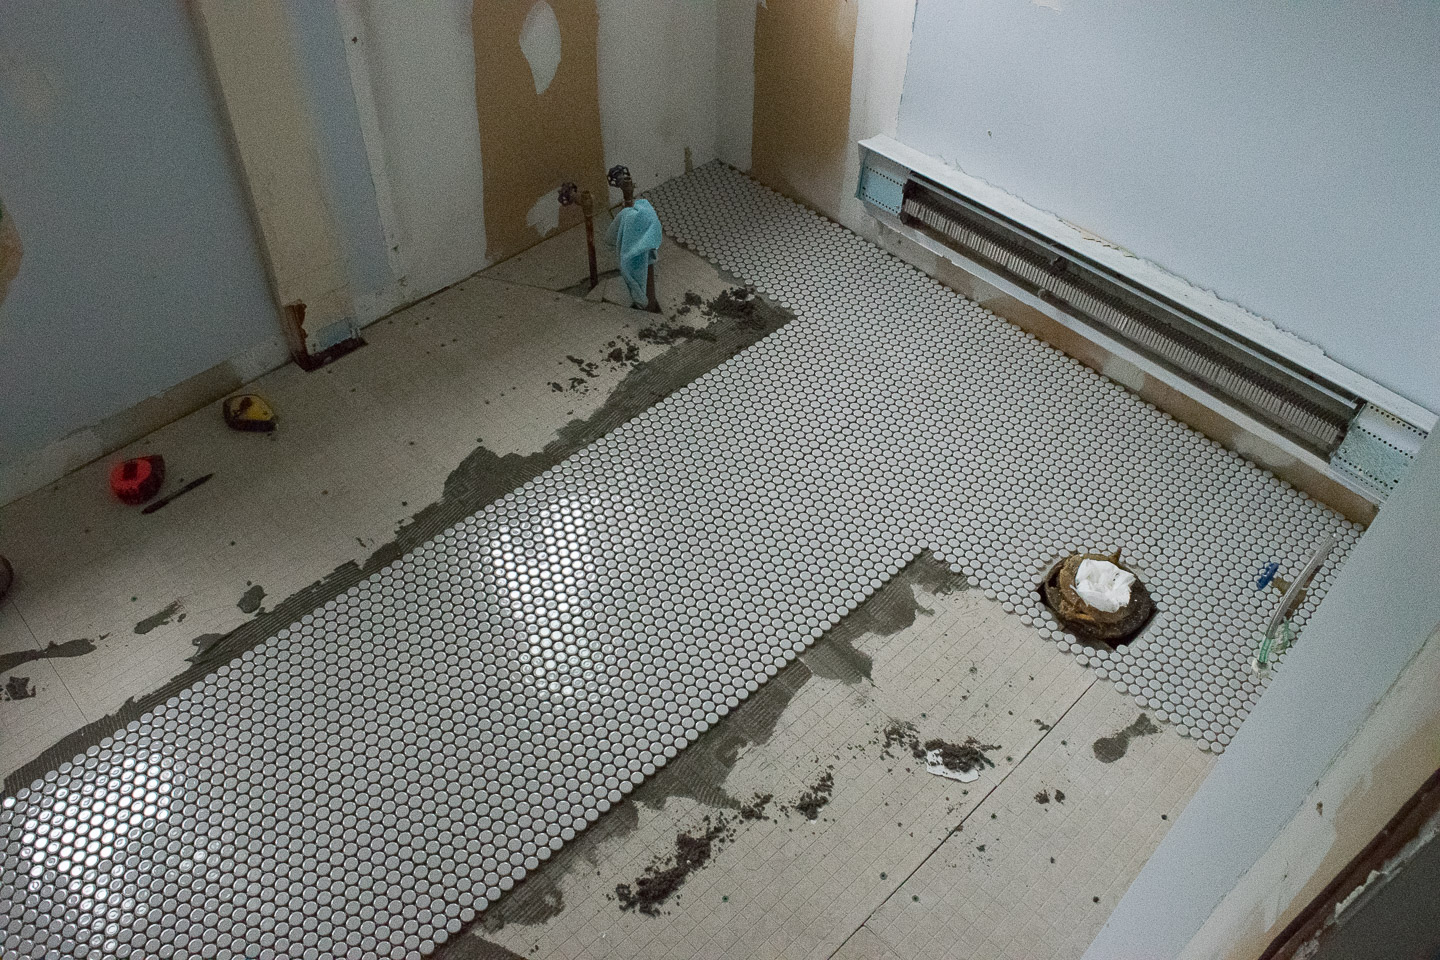 Why-were-simplifying-everything-with-bathroom-tile-and-life-ORC-Week-3-1058.jpg